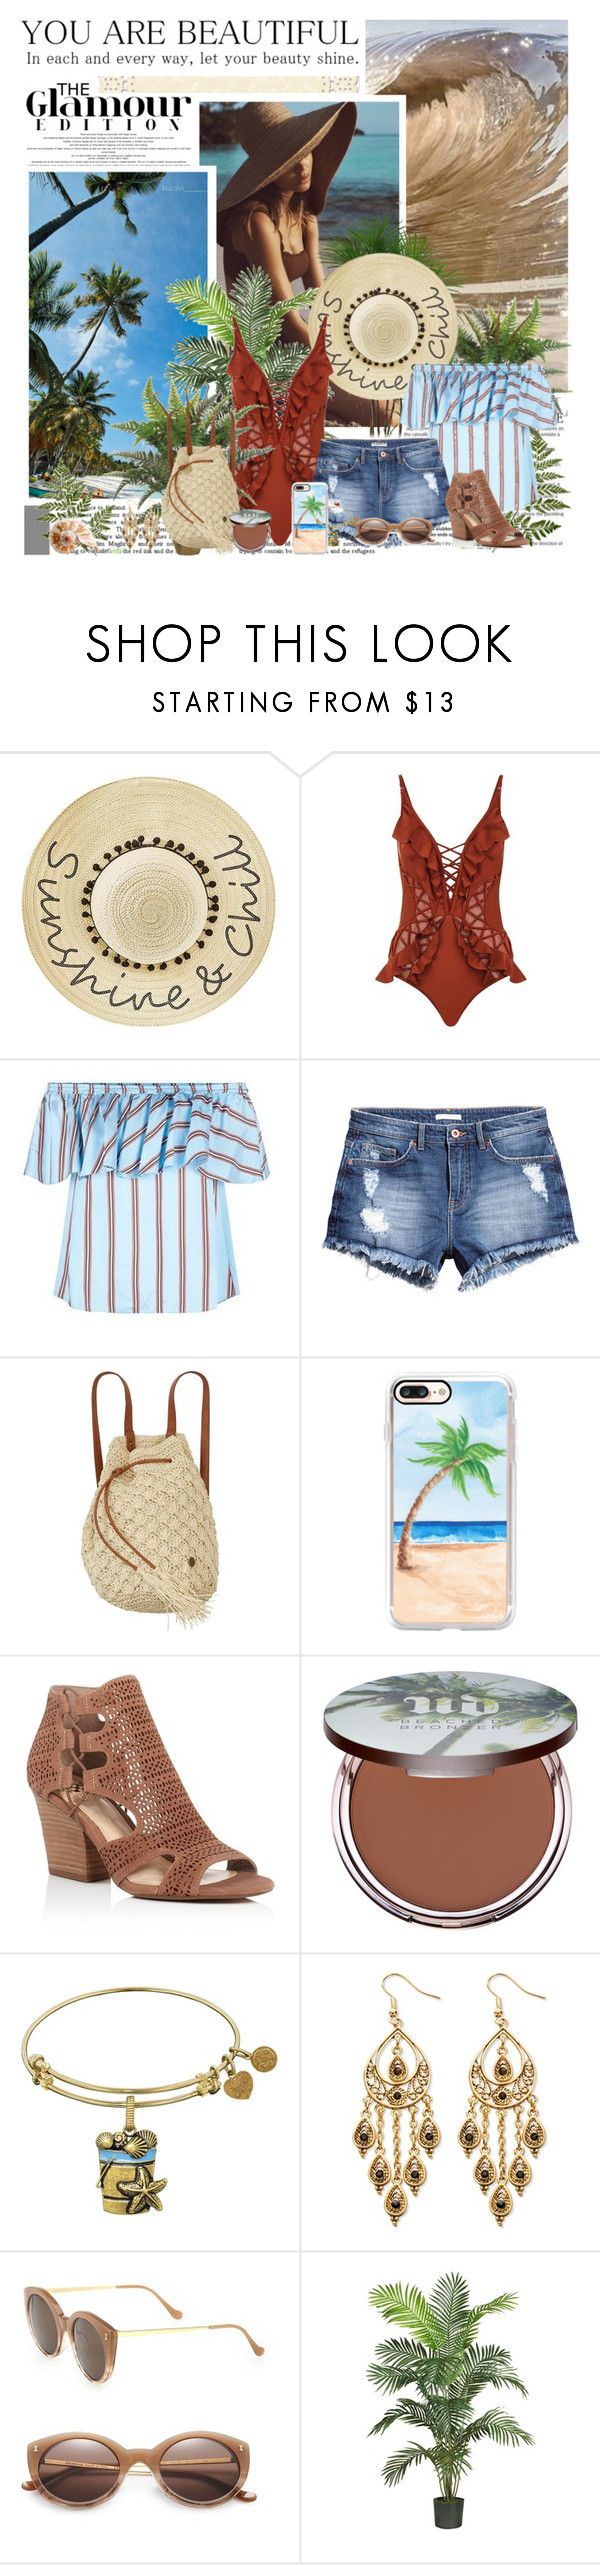 """Cozumel, Mexico"" by seafreak83 on Polyvore featuring Betsey Johnson, Zimmermann, Pinko, H&M, Billabong, Casetify, Vince Camuto, Urban Decay, Palm Beach Jewelry and Illesteva"